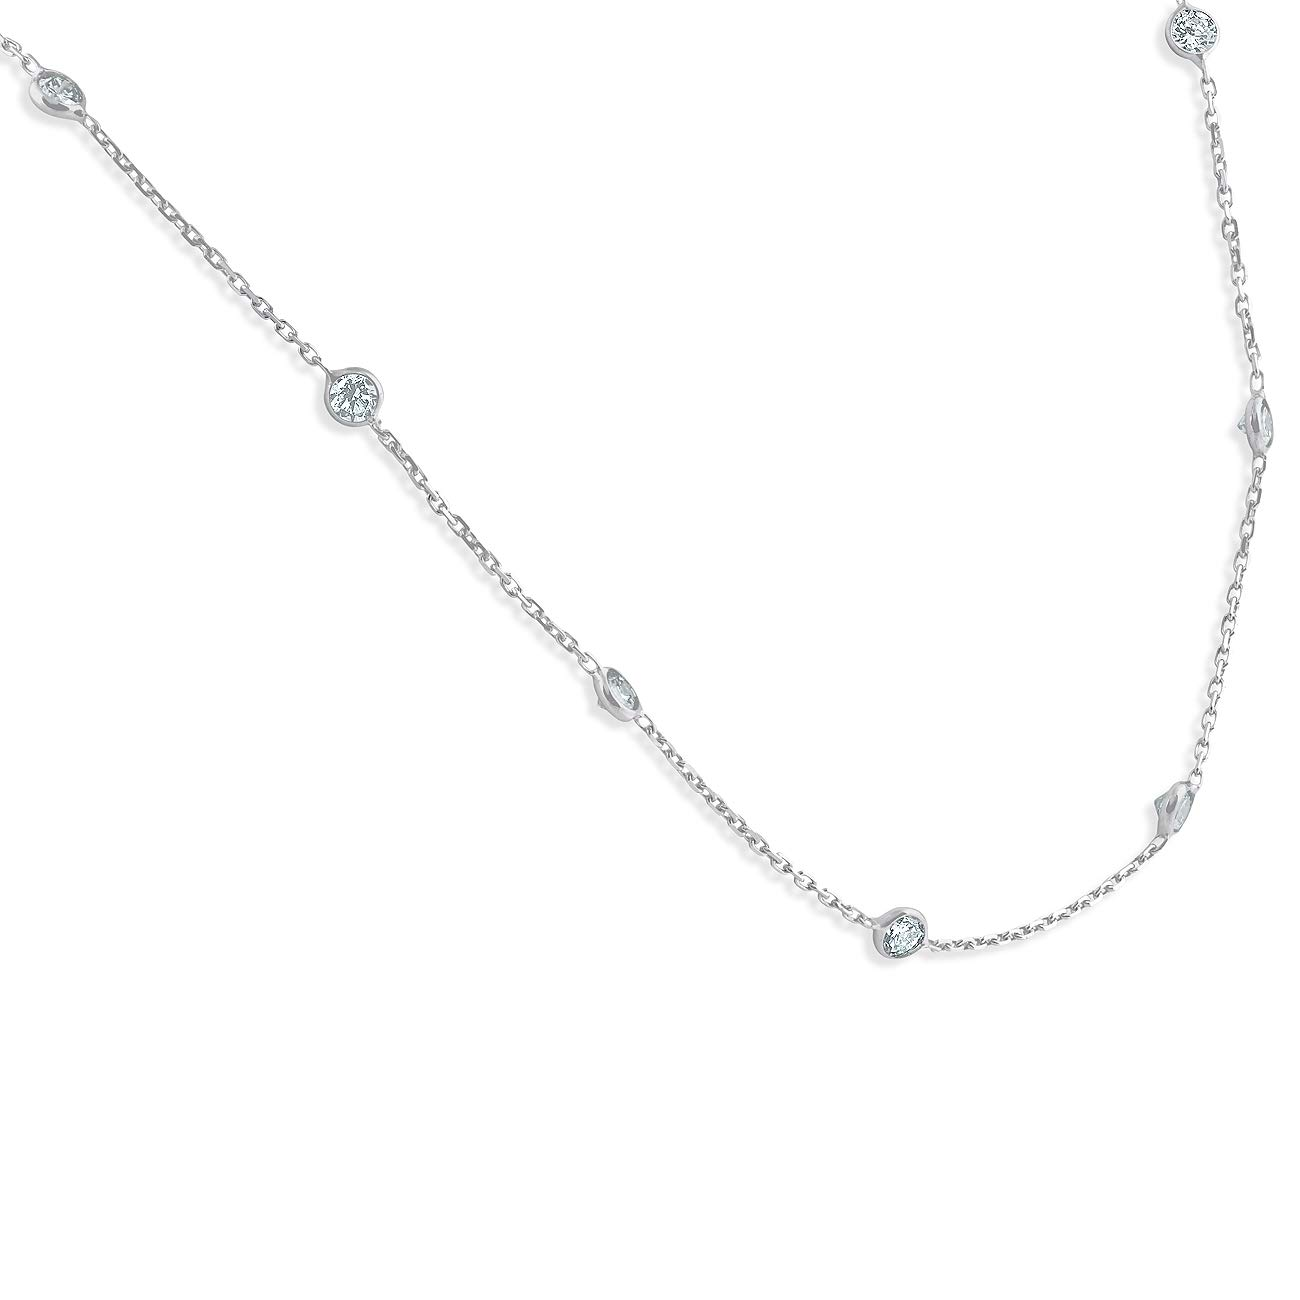 1 1/2 Ctw Diamond By The Yard Tennis Necklace 14K White Gold 18'' by P3 POMPEII3 (Image #2)